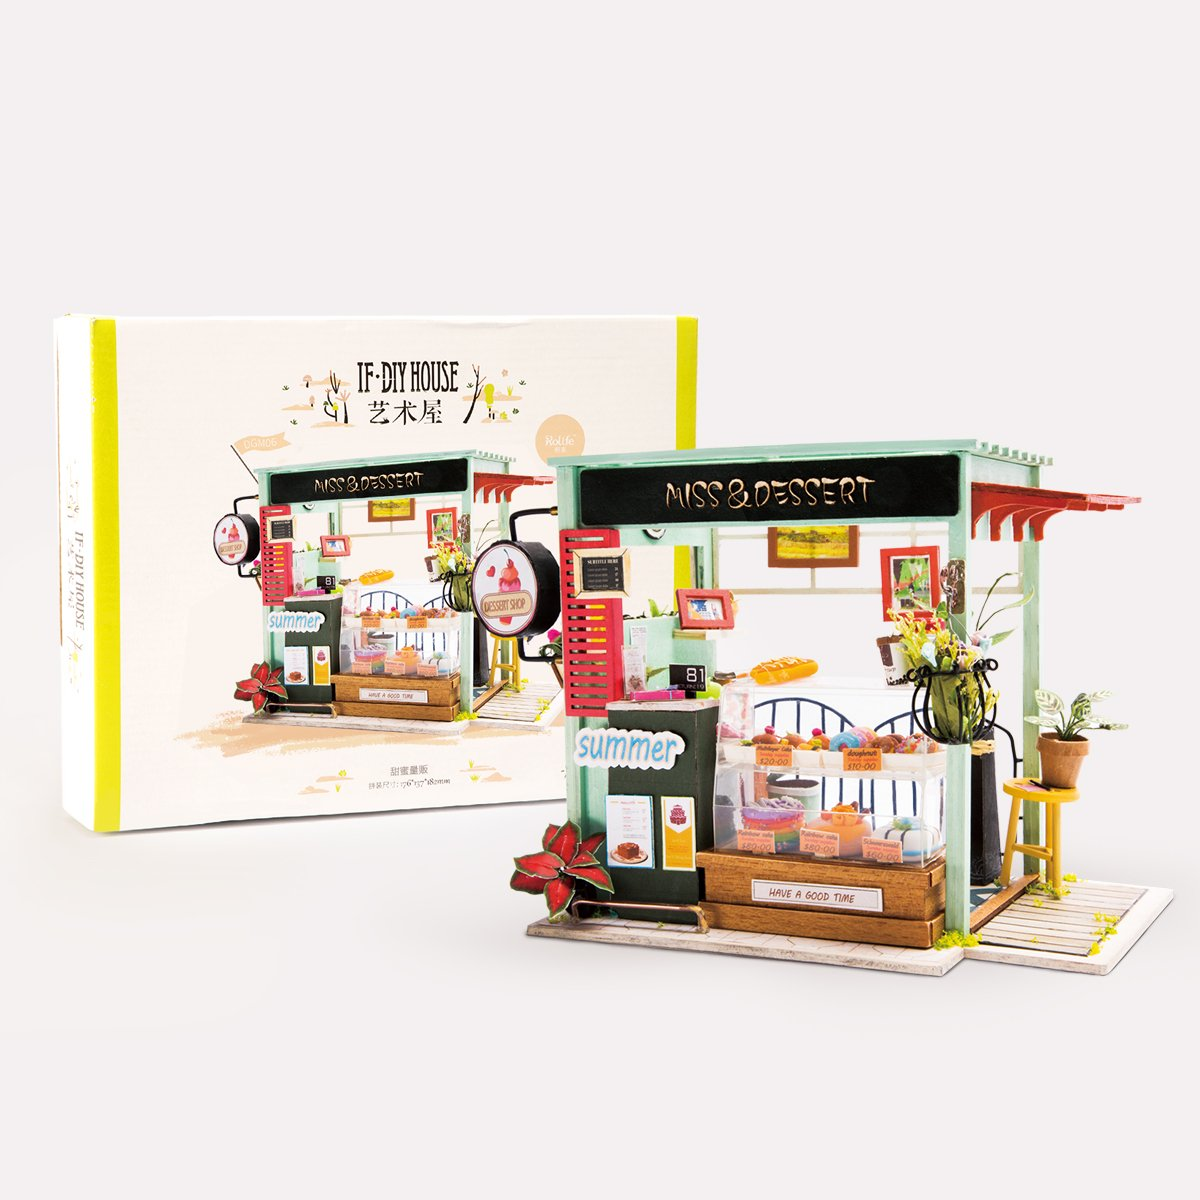 Wooden Hut Rolife Miniature Dollhouse Kits with Accessories-Model Building Sets-Wooden Toys-Super Fun Playset-Best Birthday for Girls Women Friends Mom Wife